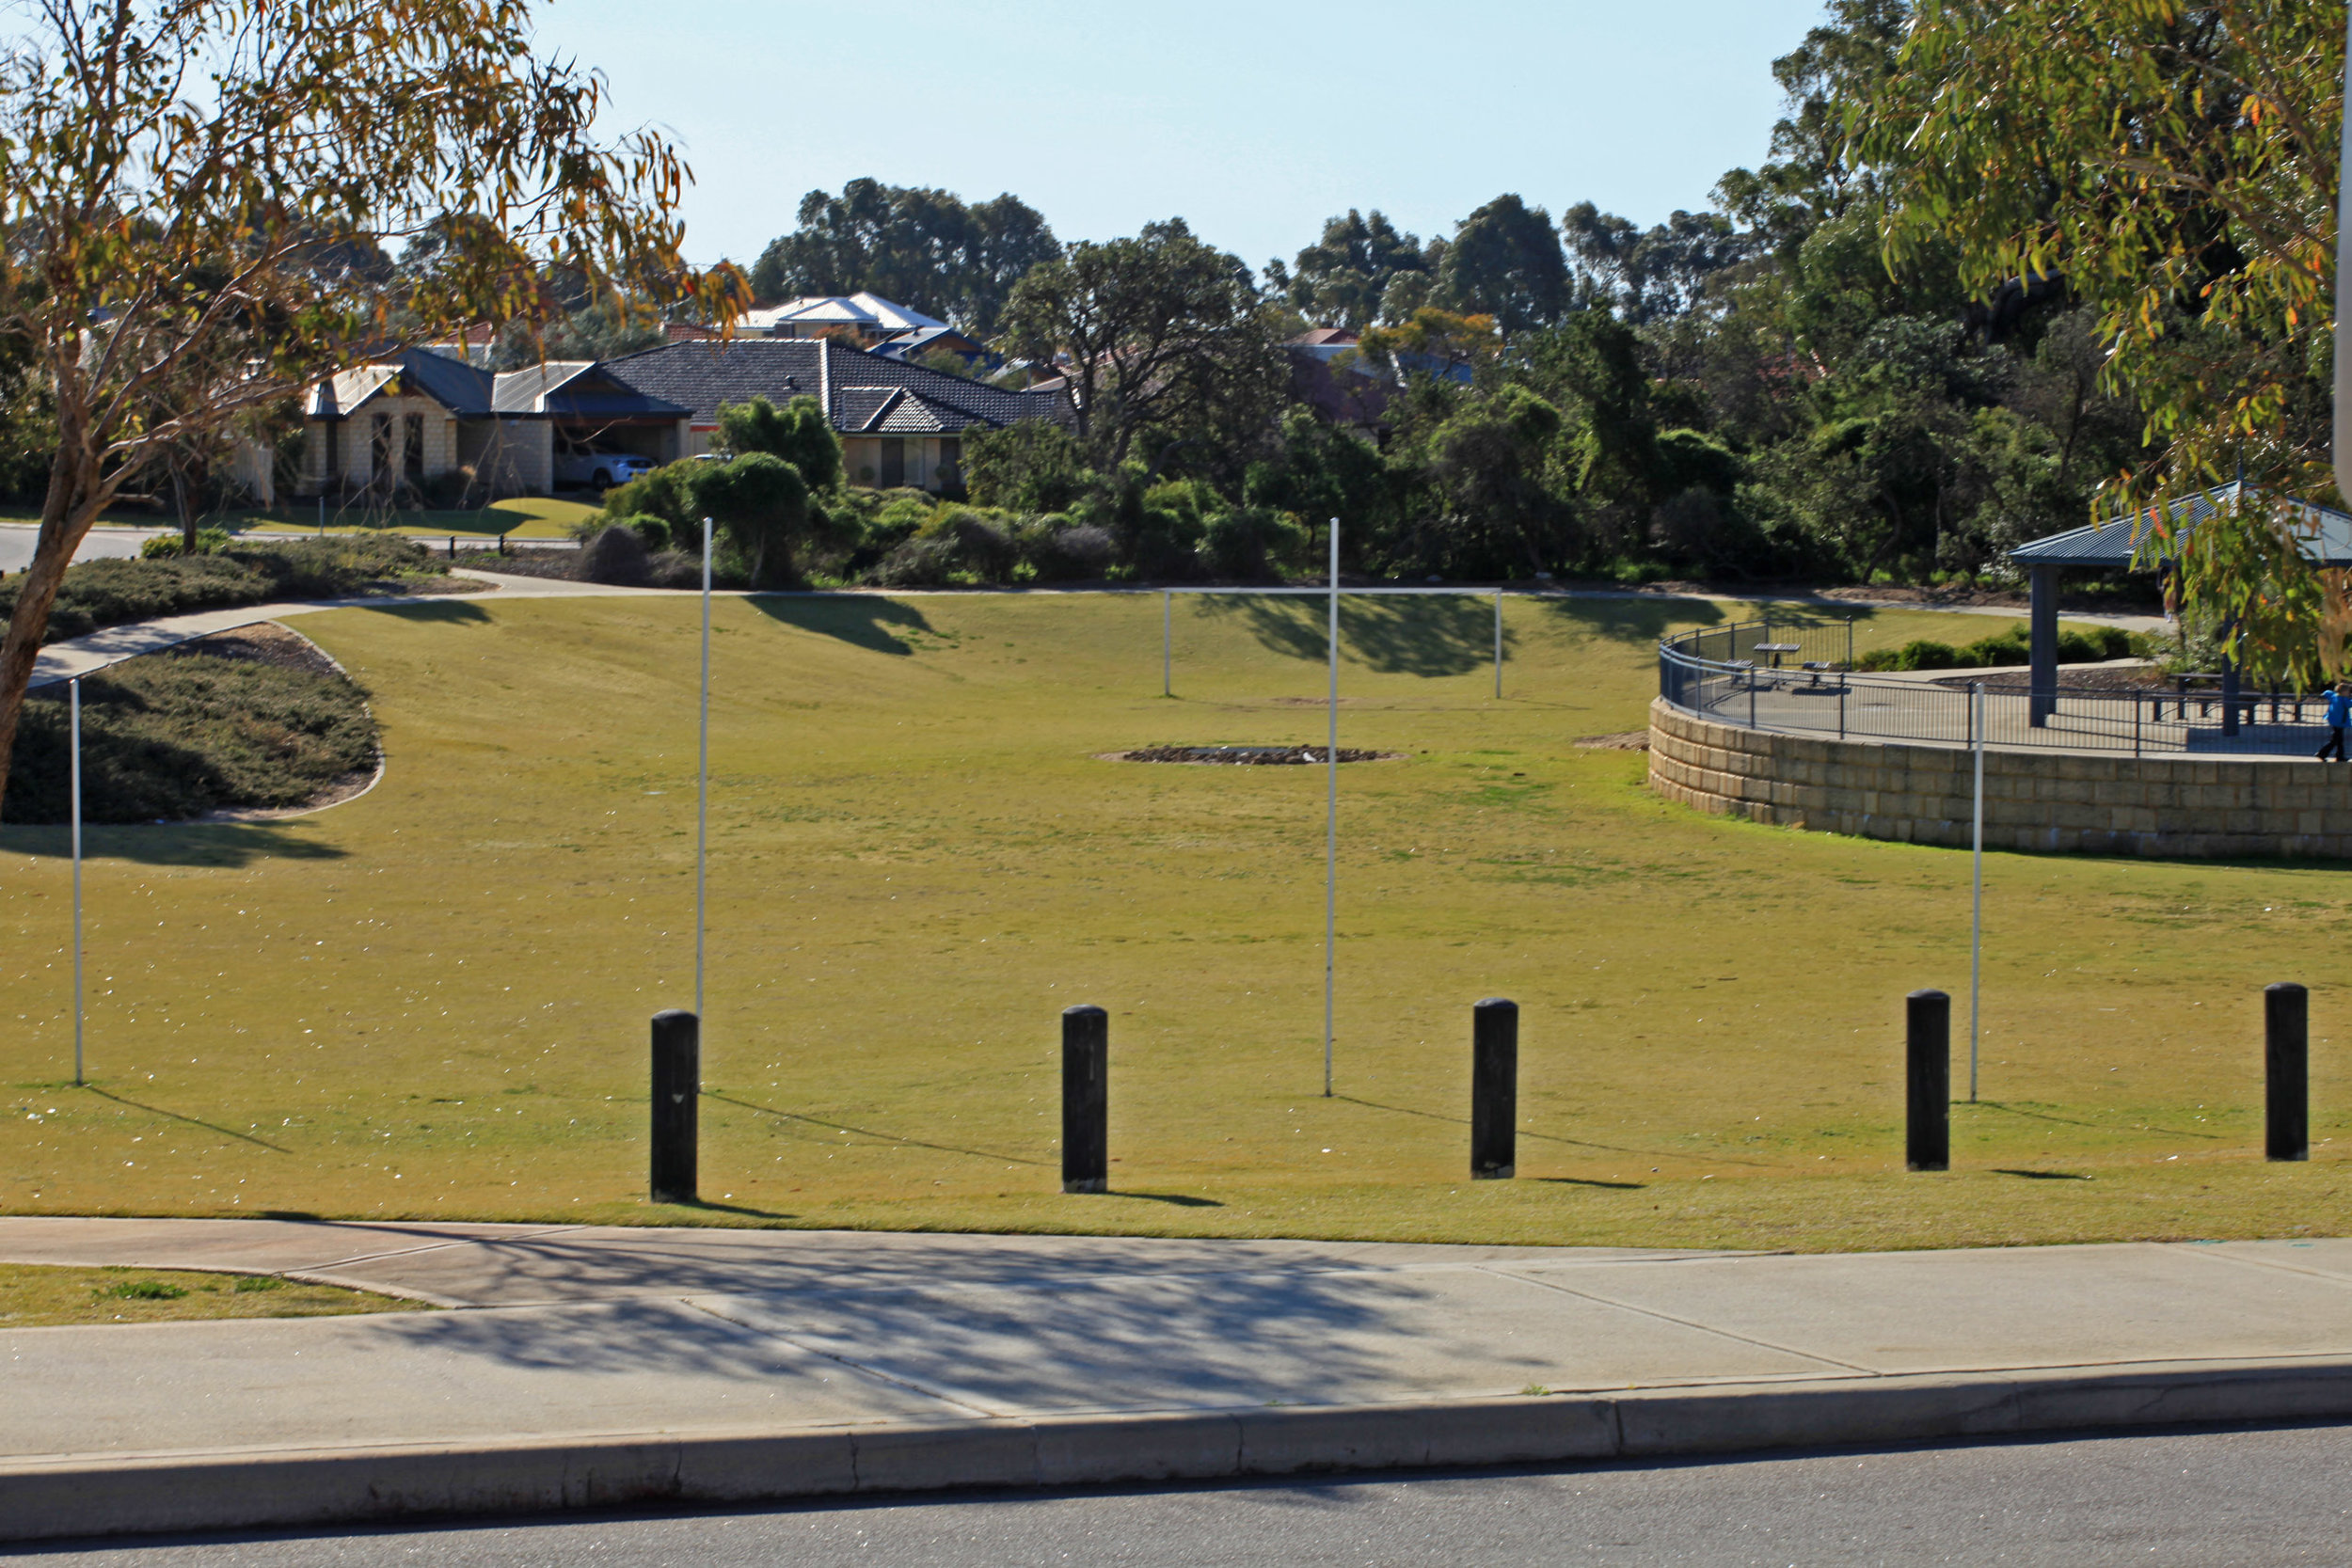 Fig 1: Neighbourhood park in a low density suburb